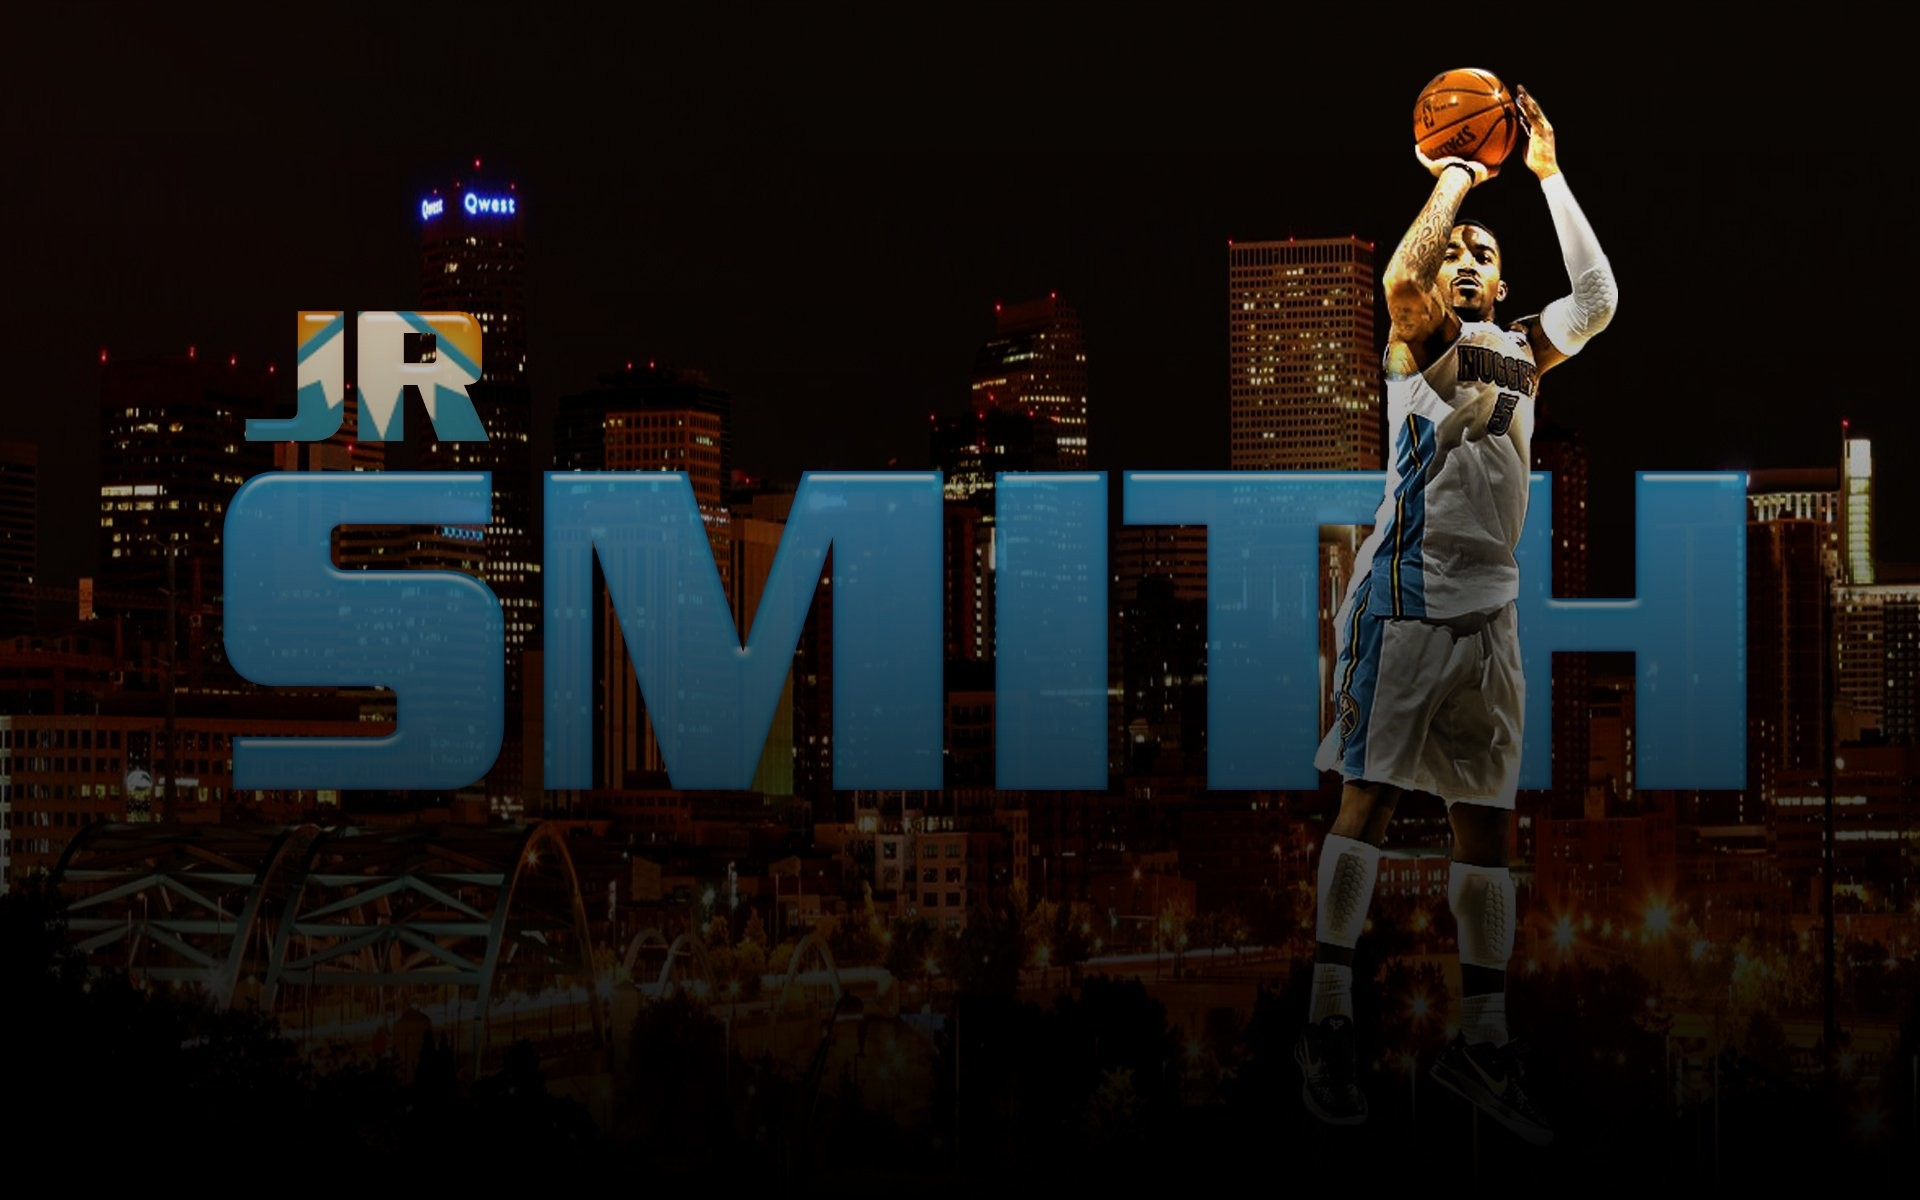 1920x1200 New York Knicks Jr Smith